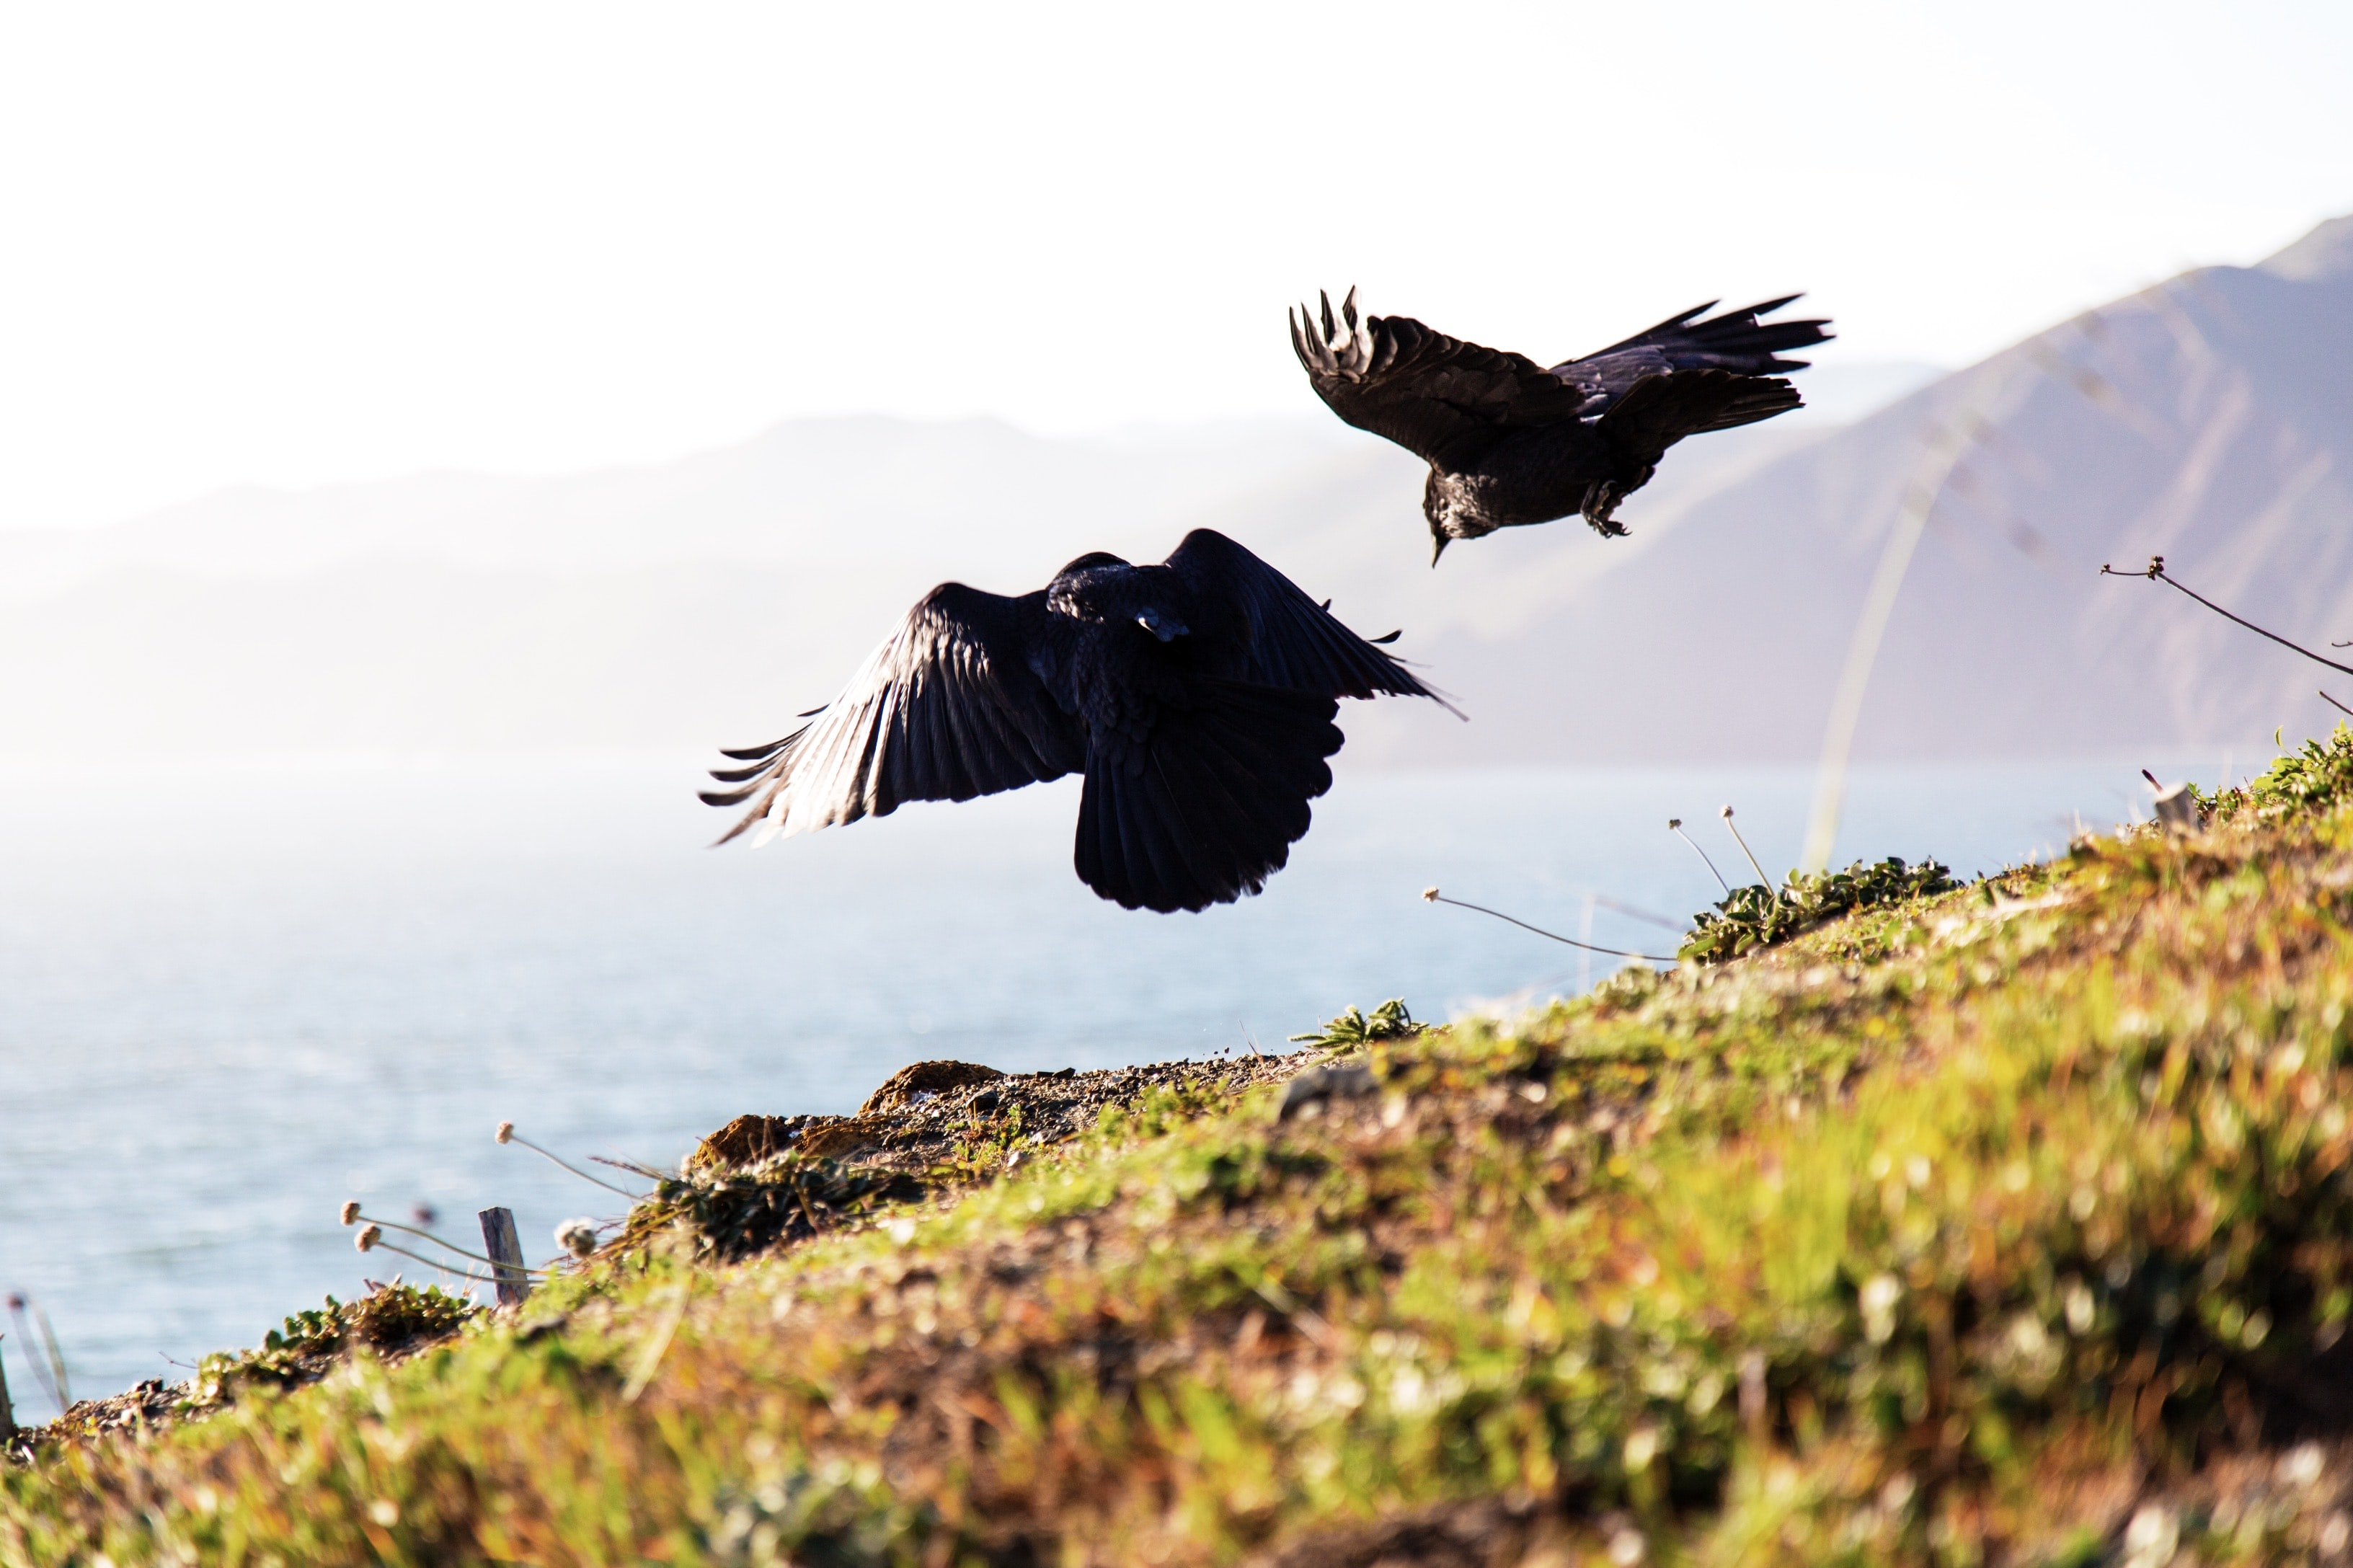 A pair of black birds flies above a grassy hill overlooking a body of water